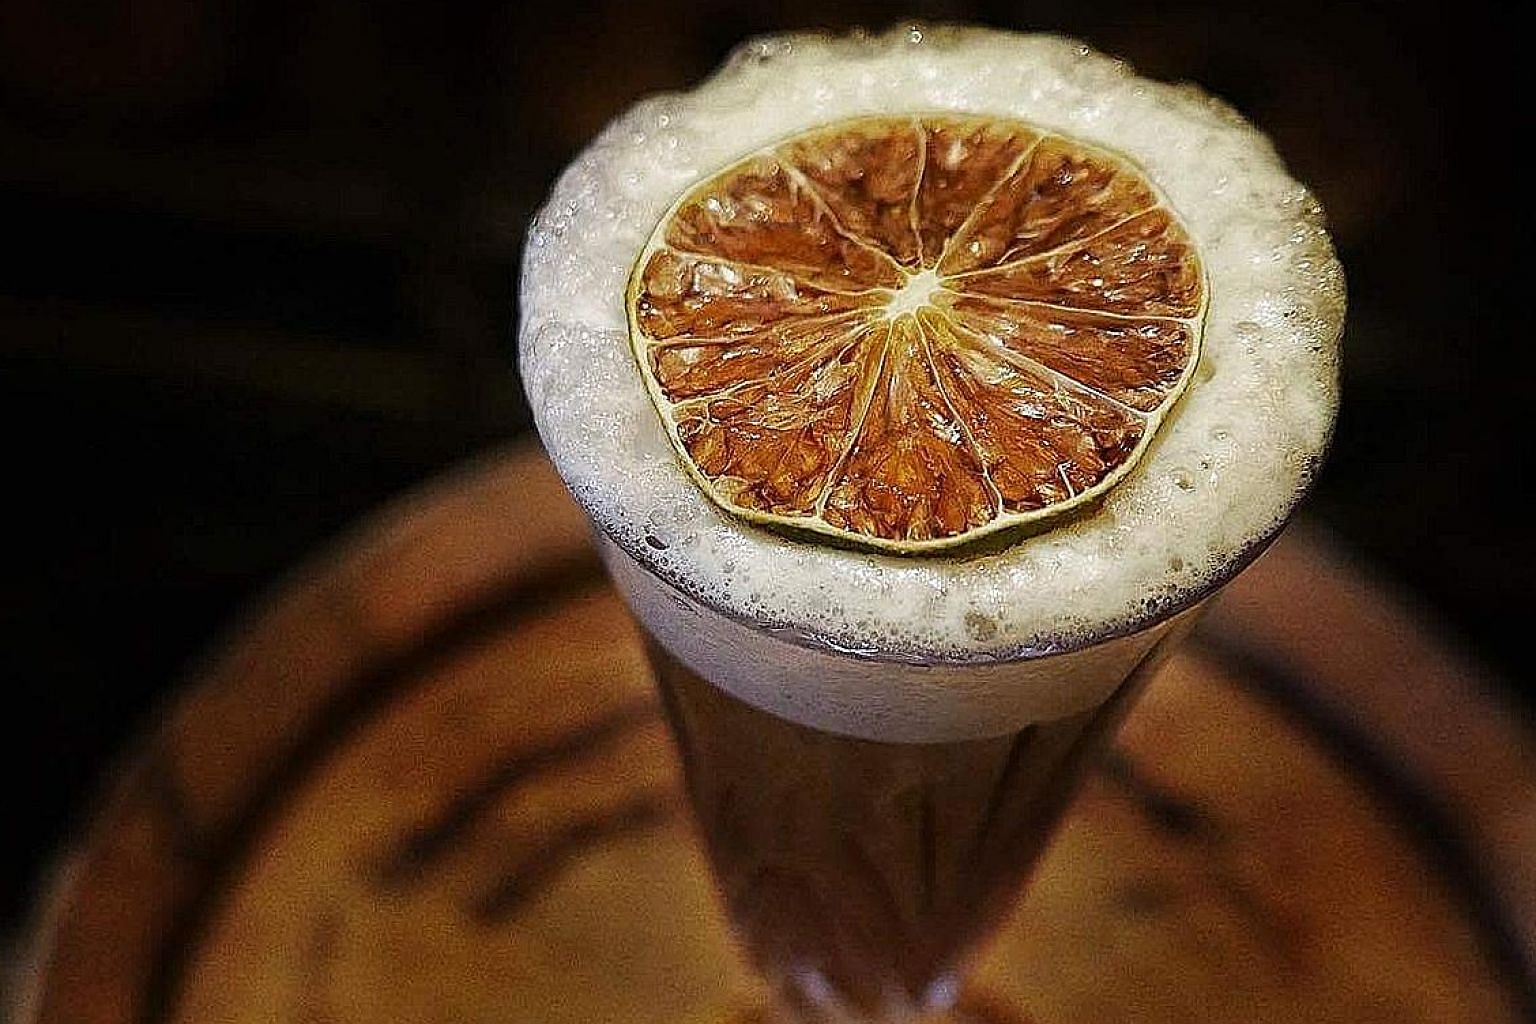 Manhattan's Aged Singapore Sling will be served at Raffles Hotel's Long Bar on Sunday.